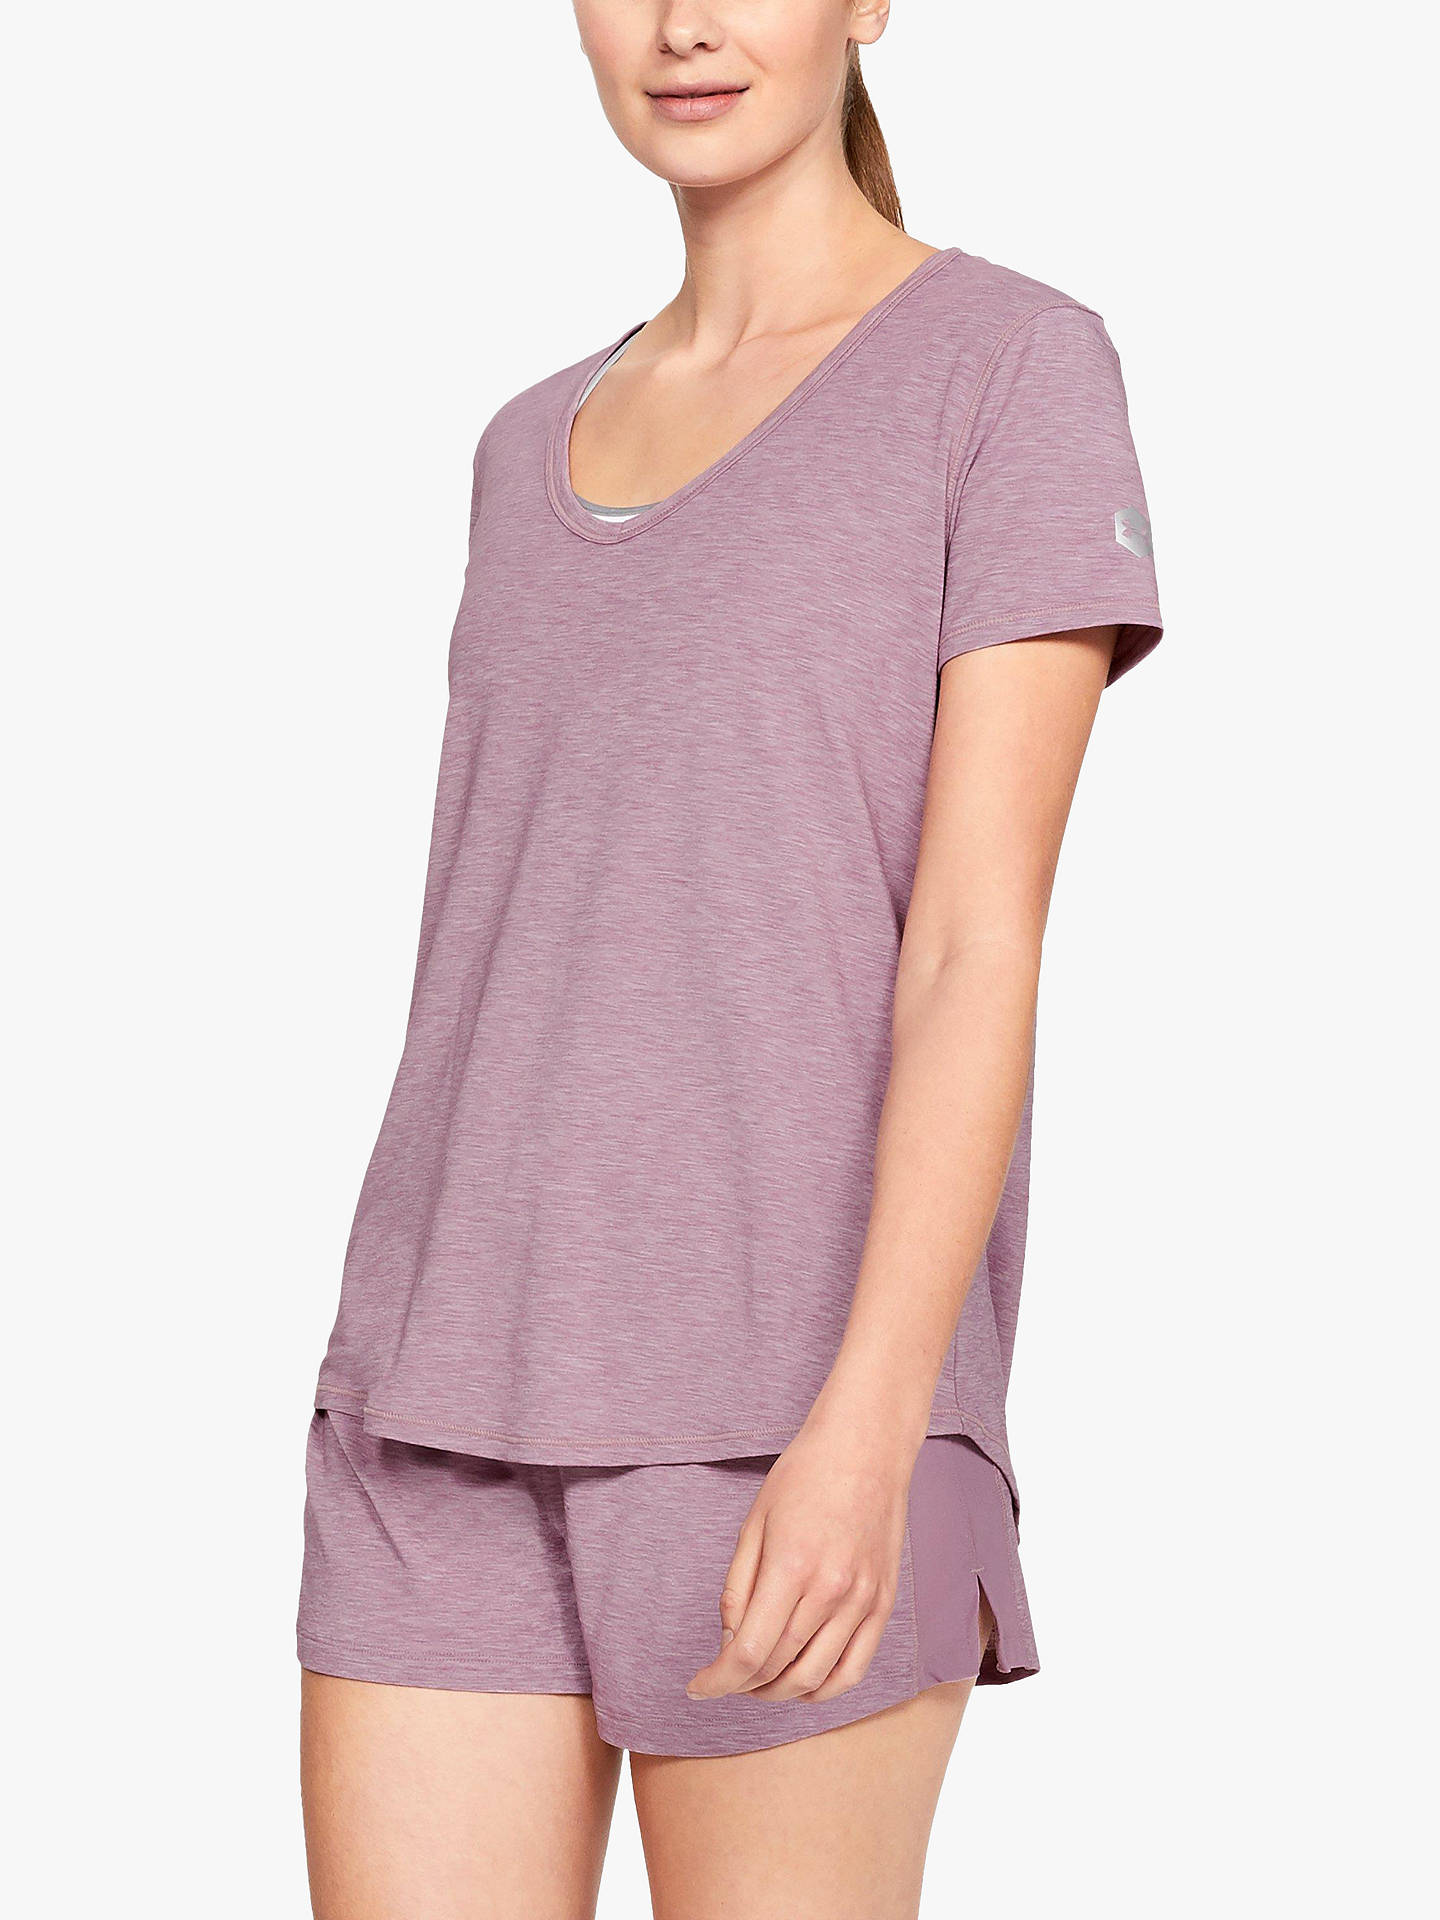 52f695a130 Under Armour Athlete Recovery Sleepwear T-Shirt at John Lewis & Partners